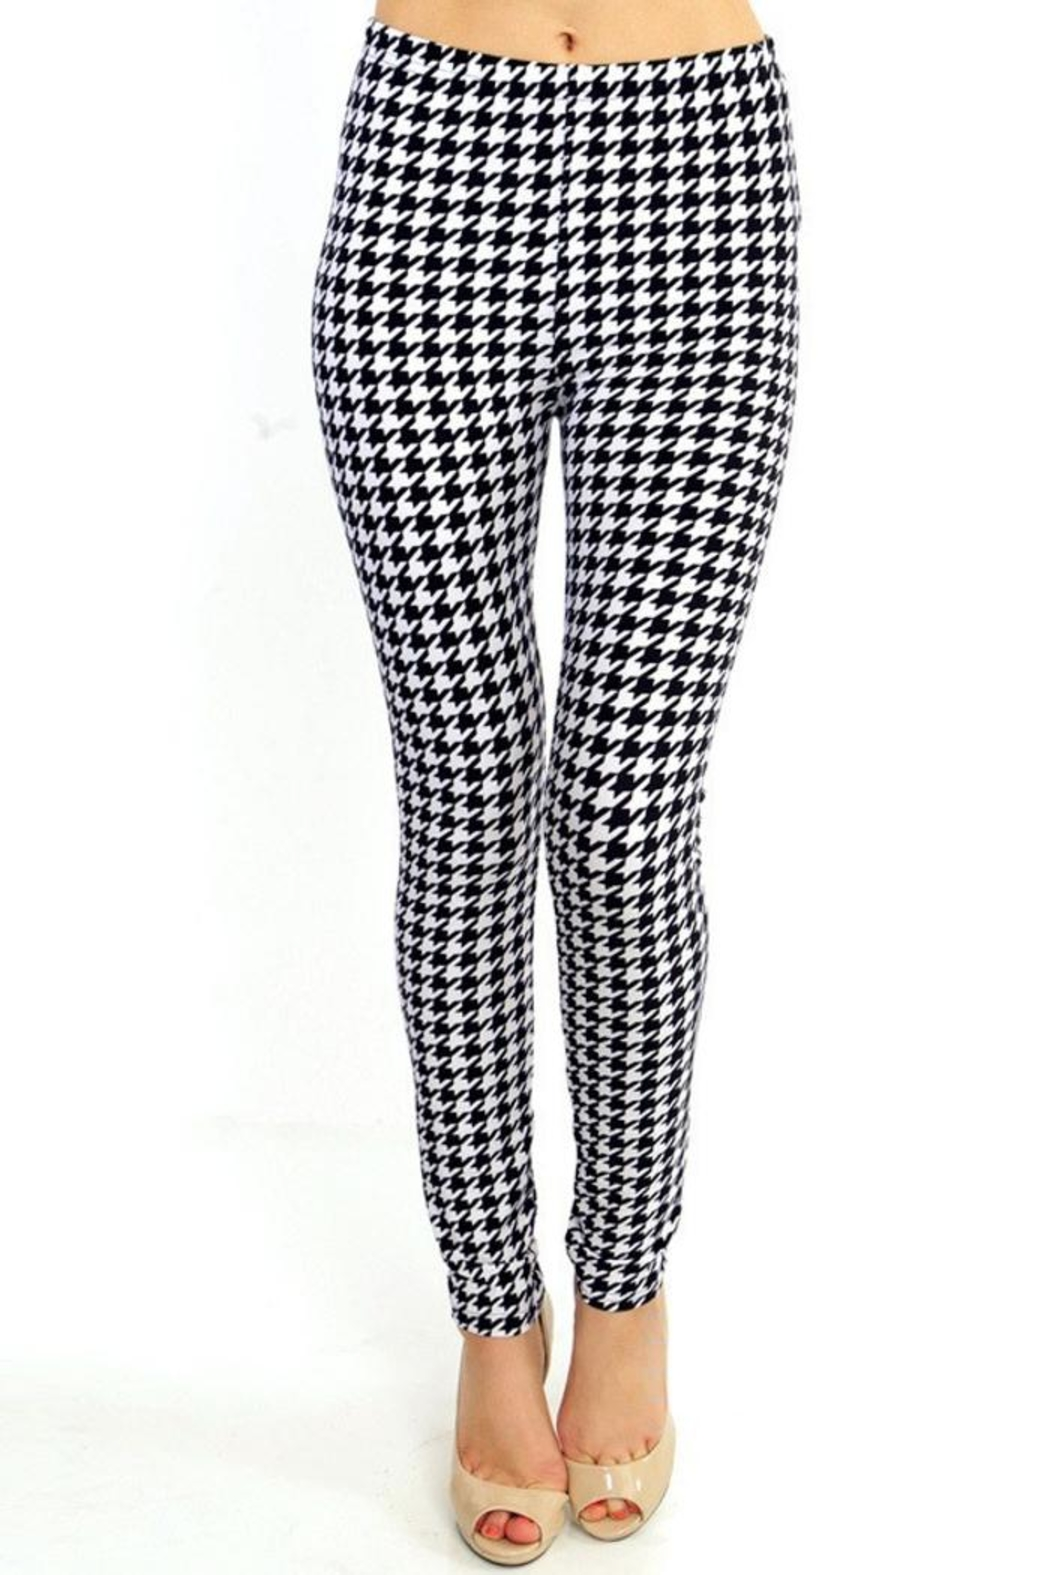 People Outfitter Houndstooth Legging - Main Image